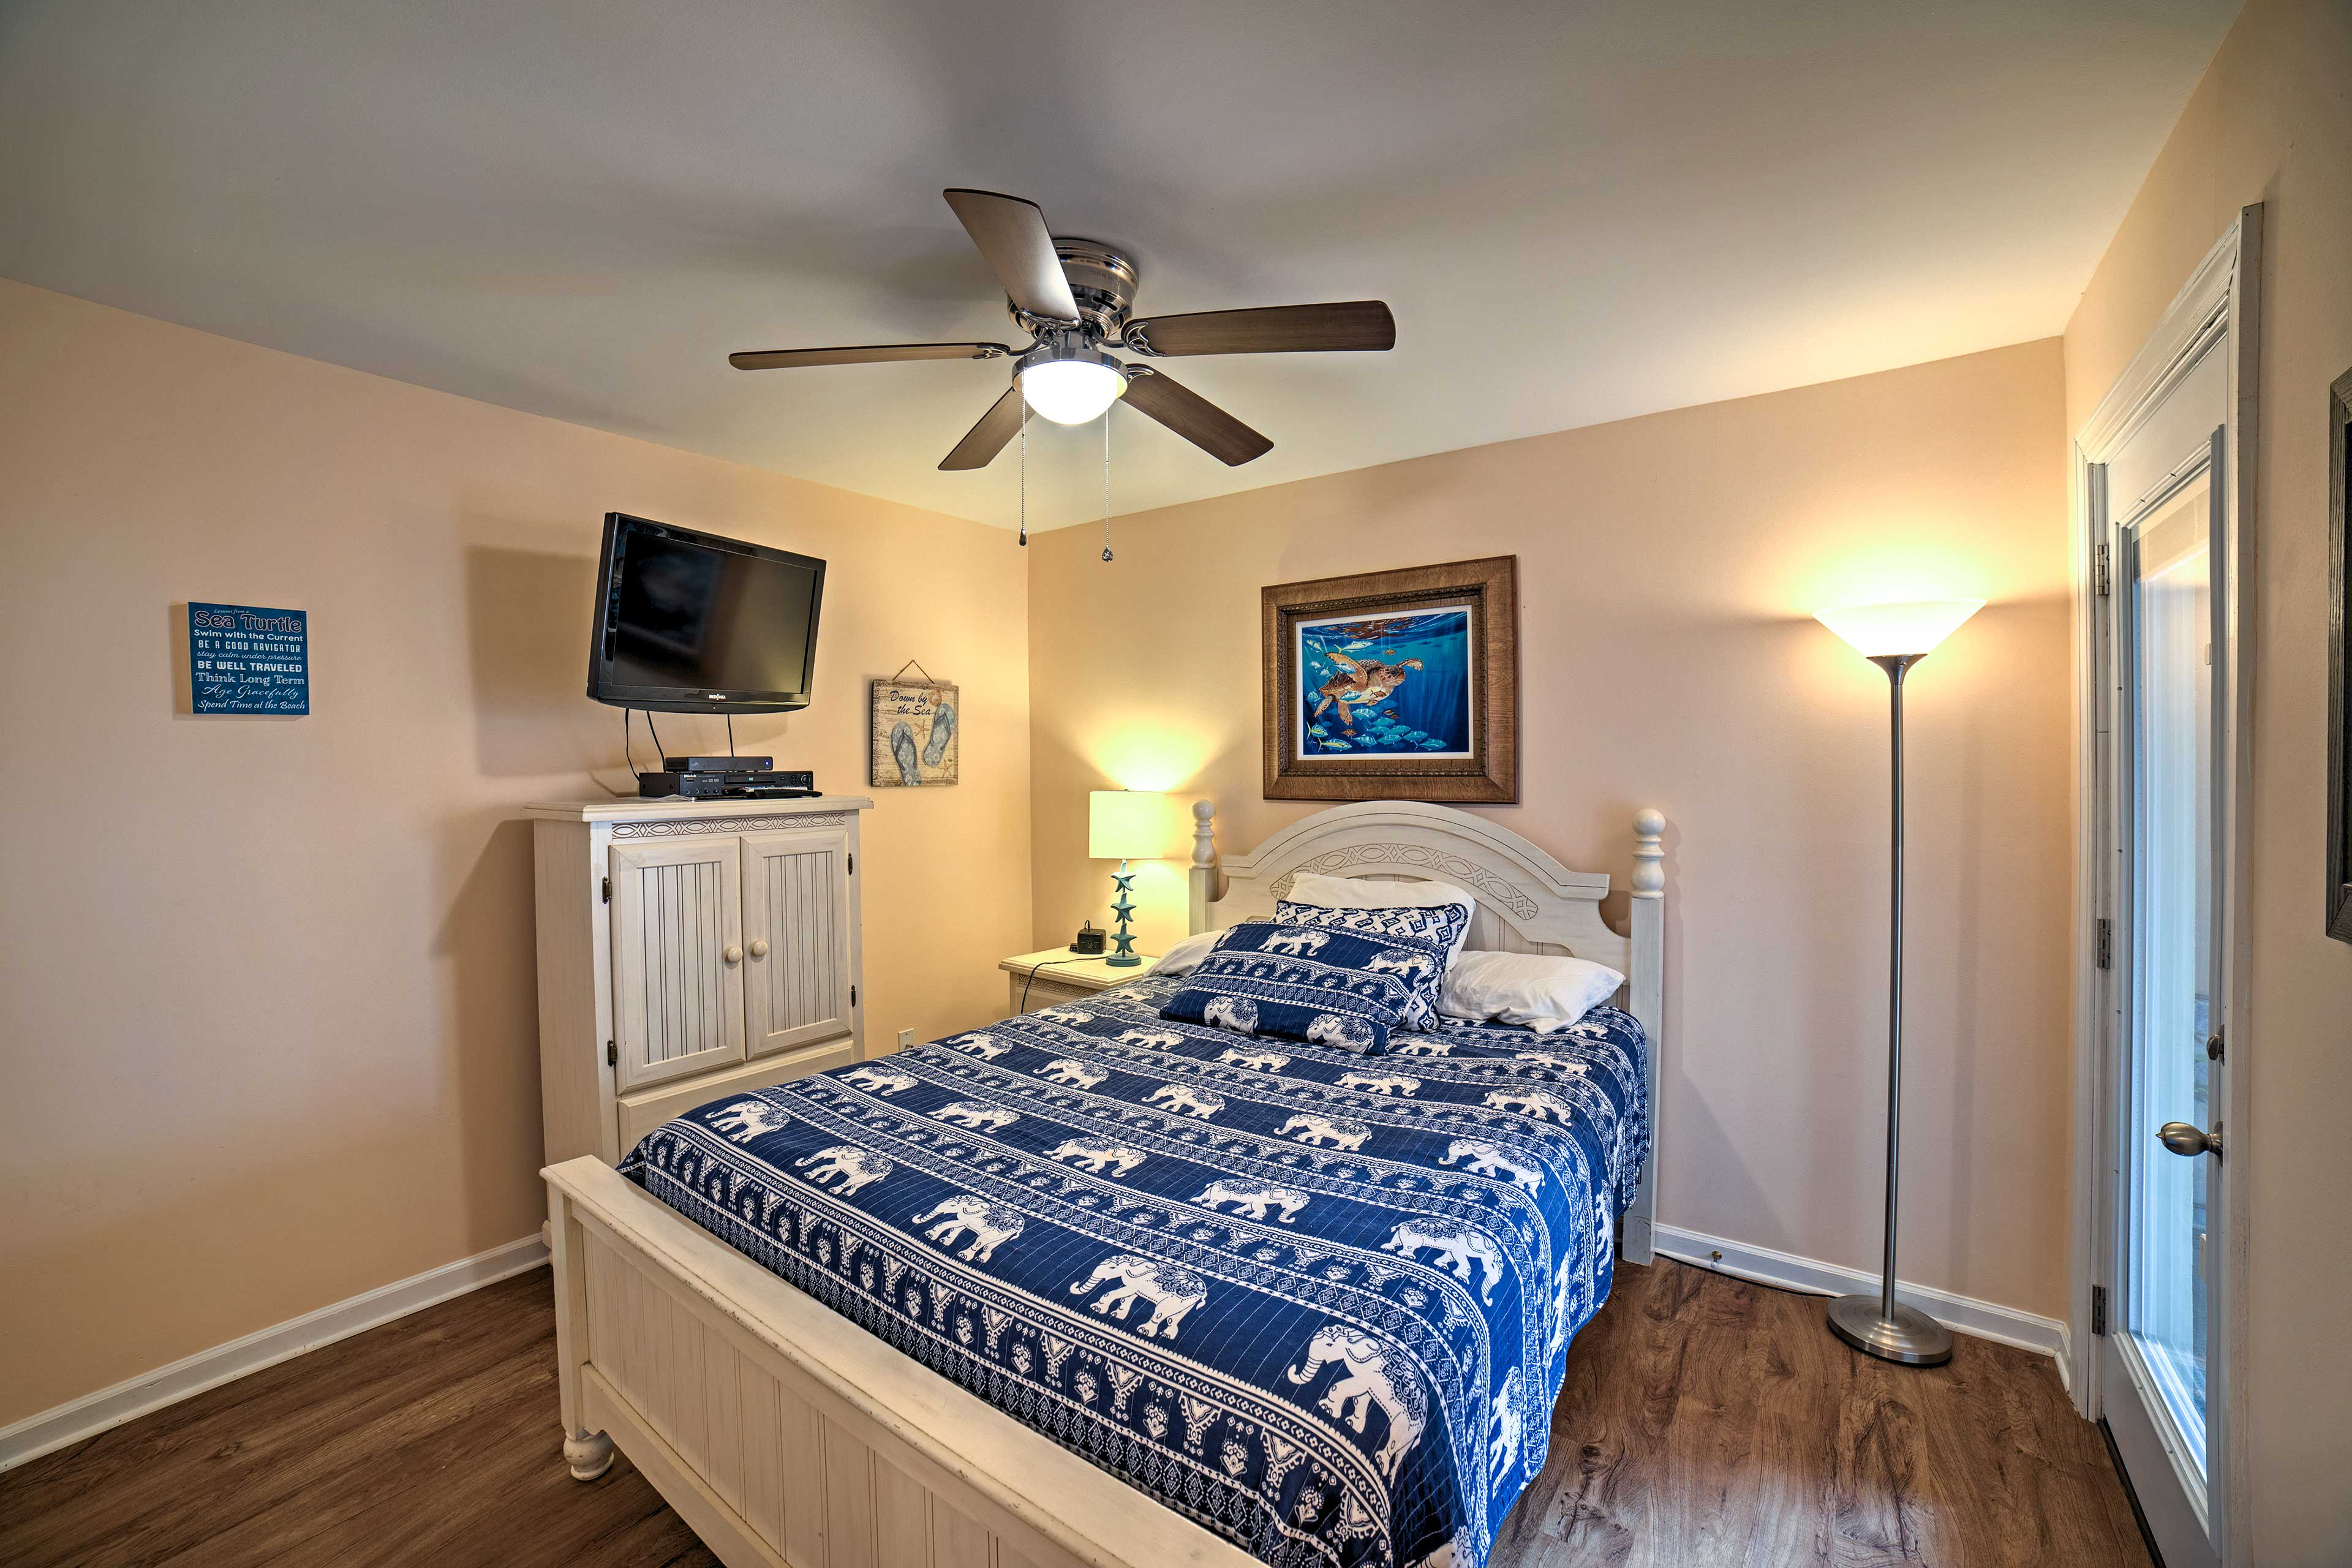 The master bedroom features a queen bed, flat-screen cable TV, and ceiling fan.